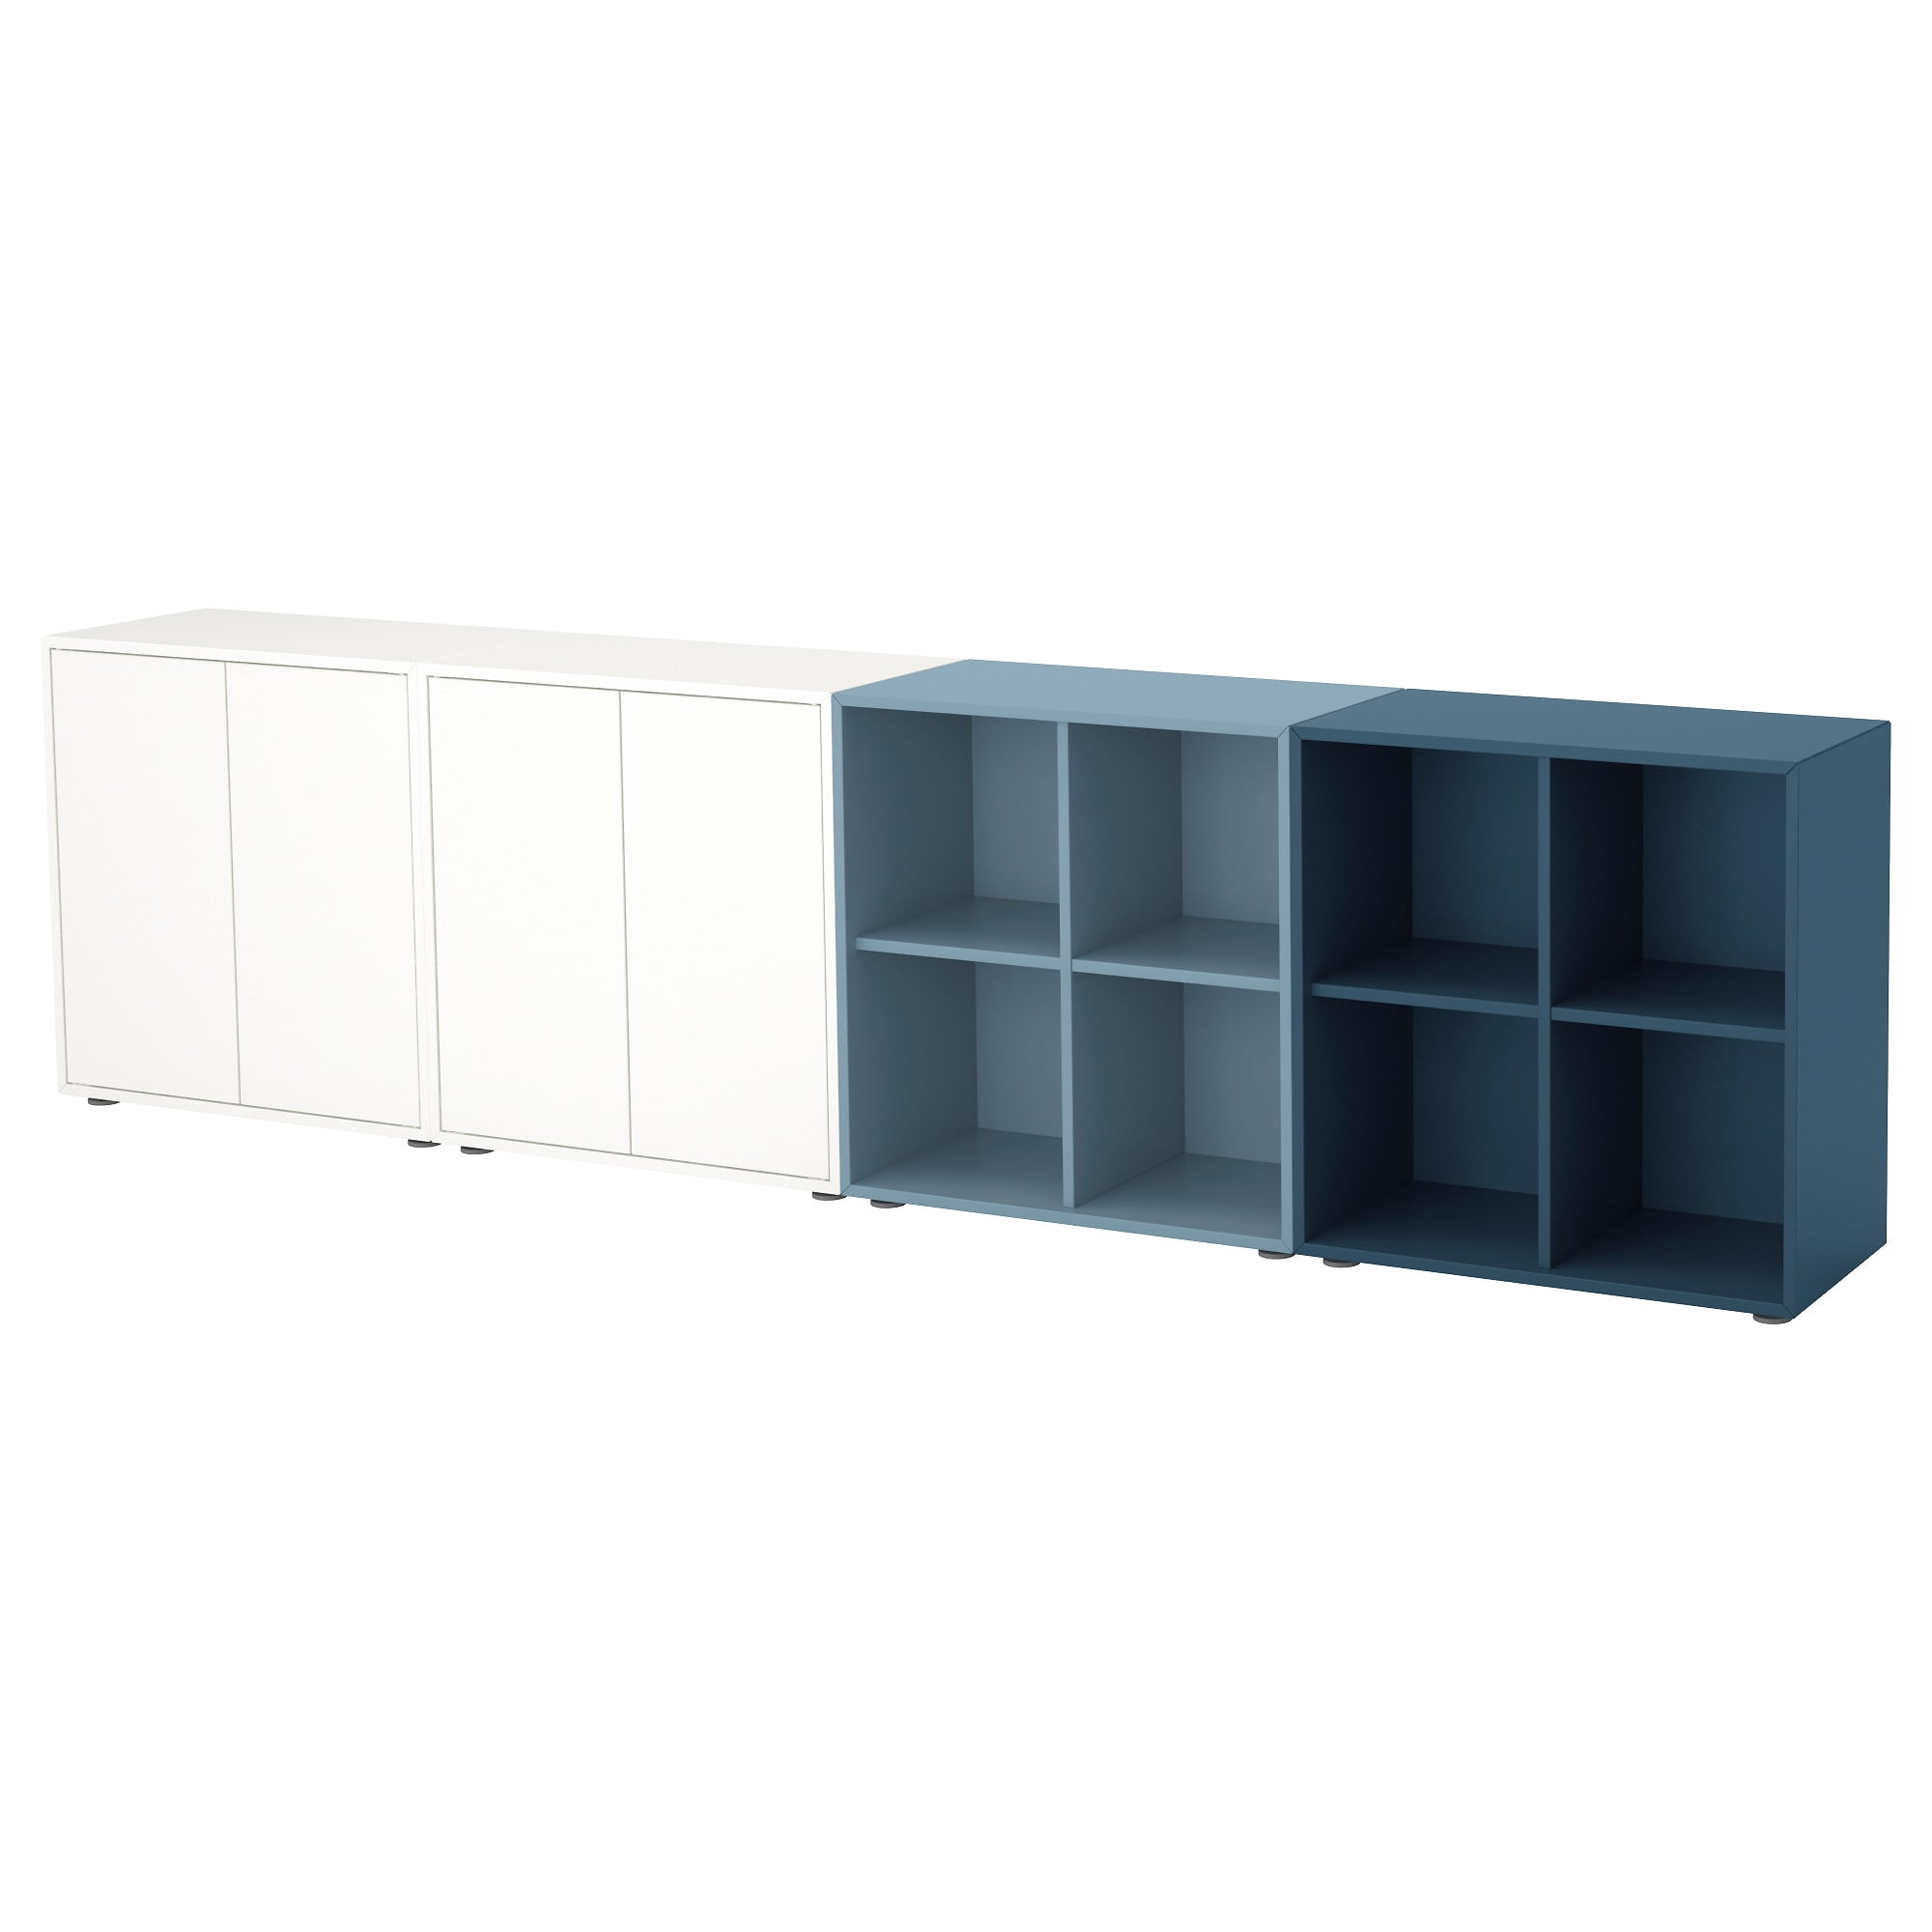 ikea eket cabinet combination with feet zoom in